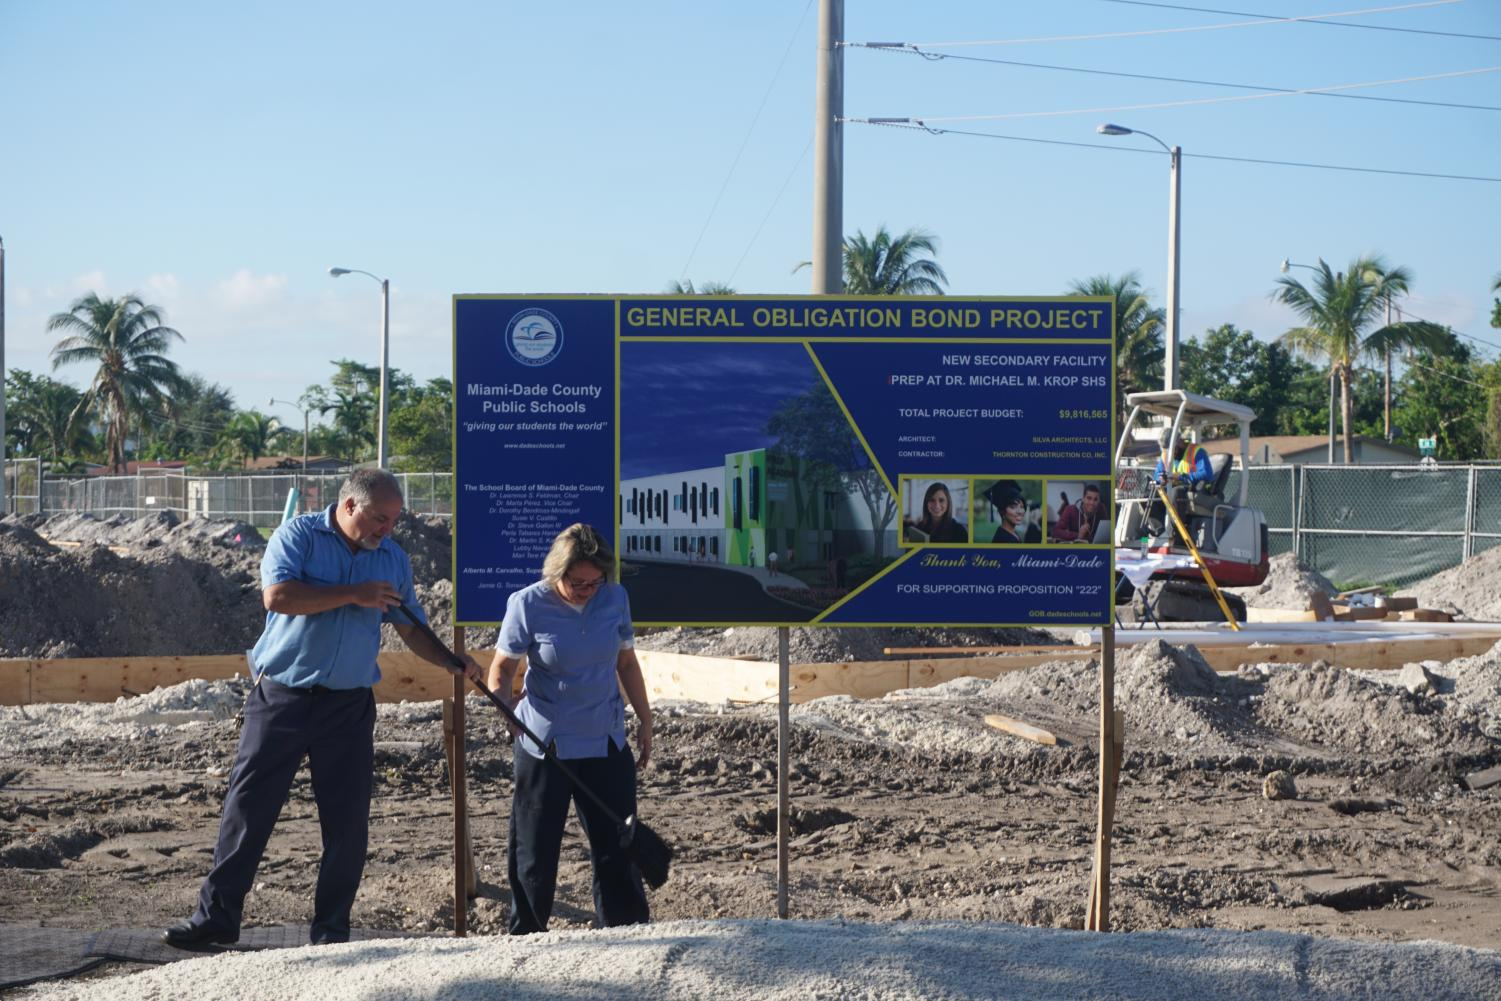 Custodians Jesus Diaz and Marvelia Mansur lay the sand on the site of the iPrep construction zone in preparation for the ceremonial groundbreaking on Monday, Nov. 6, 2017. MDCPS district officials joined Superintendent of Schools Alberto Carvhalo and Krop faculty and students to unveil the beginning of construction of the new academy.